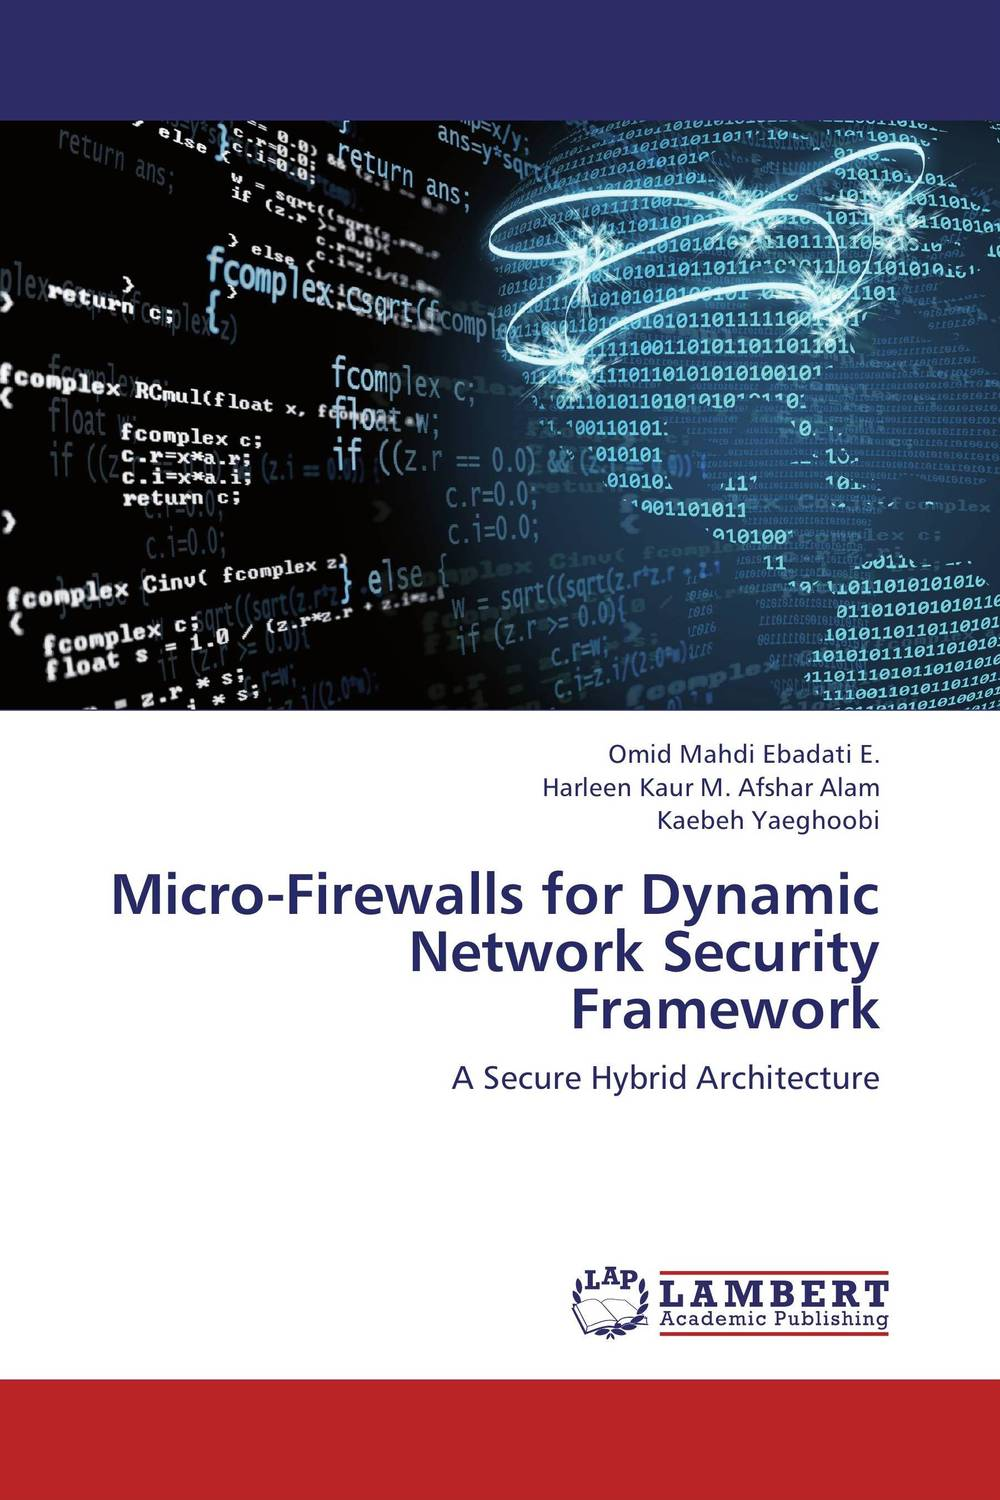 Micro-Firewalls for Dynamic Network Security Framework belousov a security features of banknotes and other documents methods of authentication manual денежные билеты бланки ценных бумаг и документов